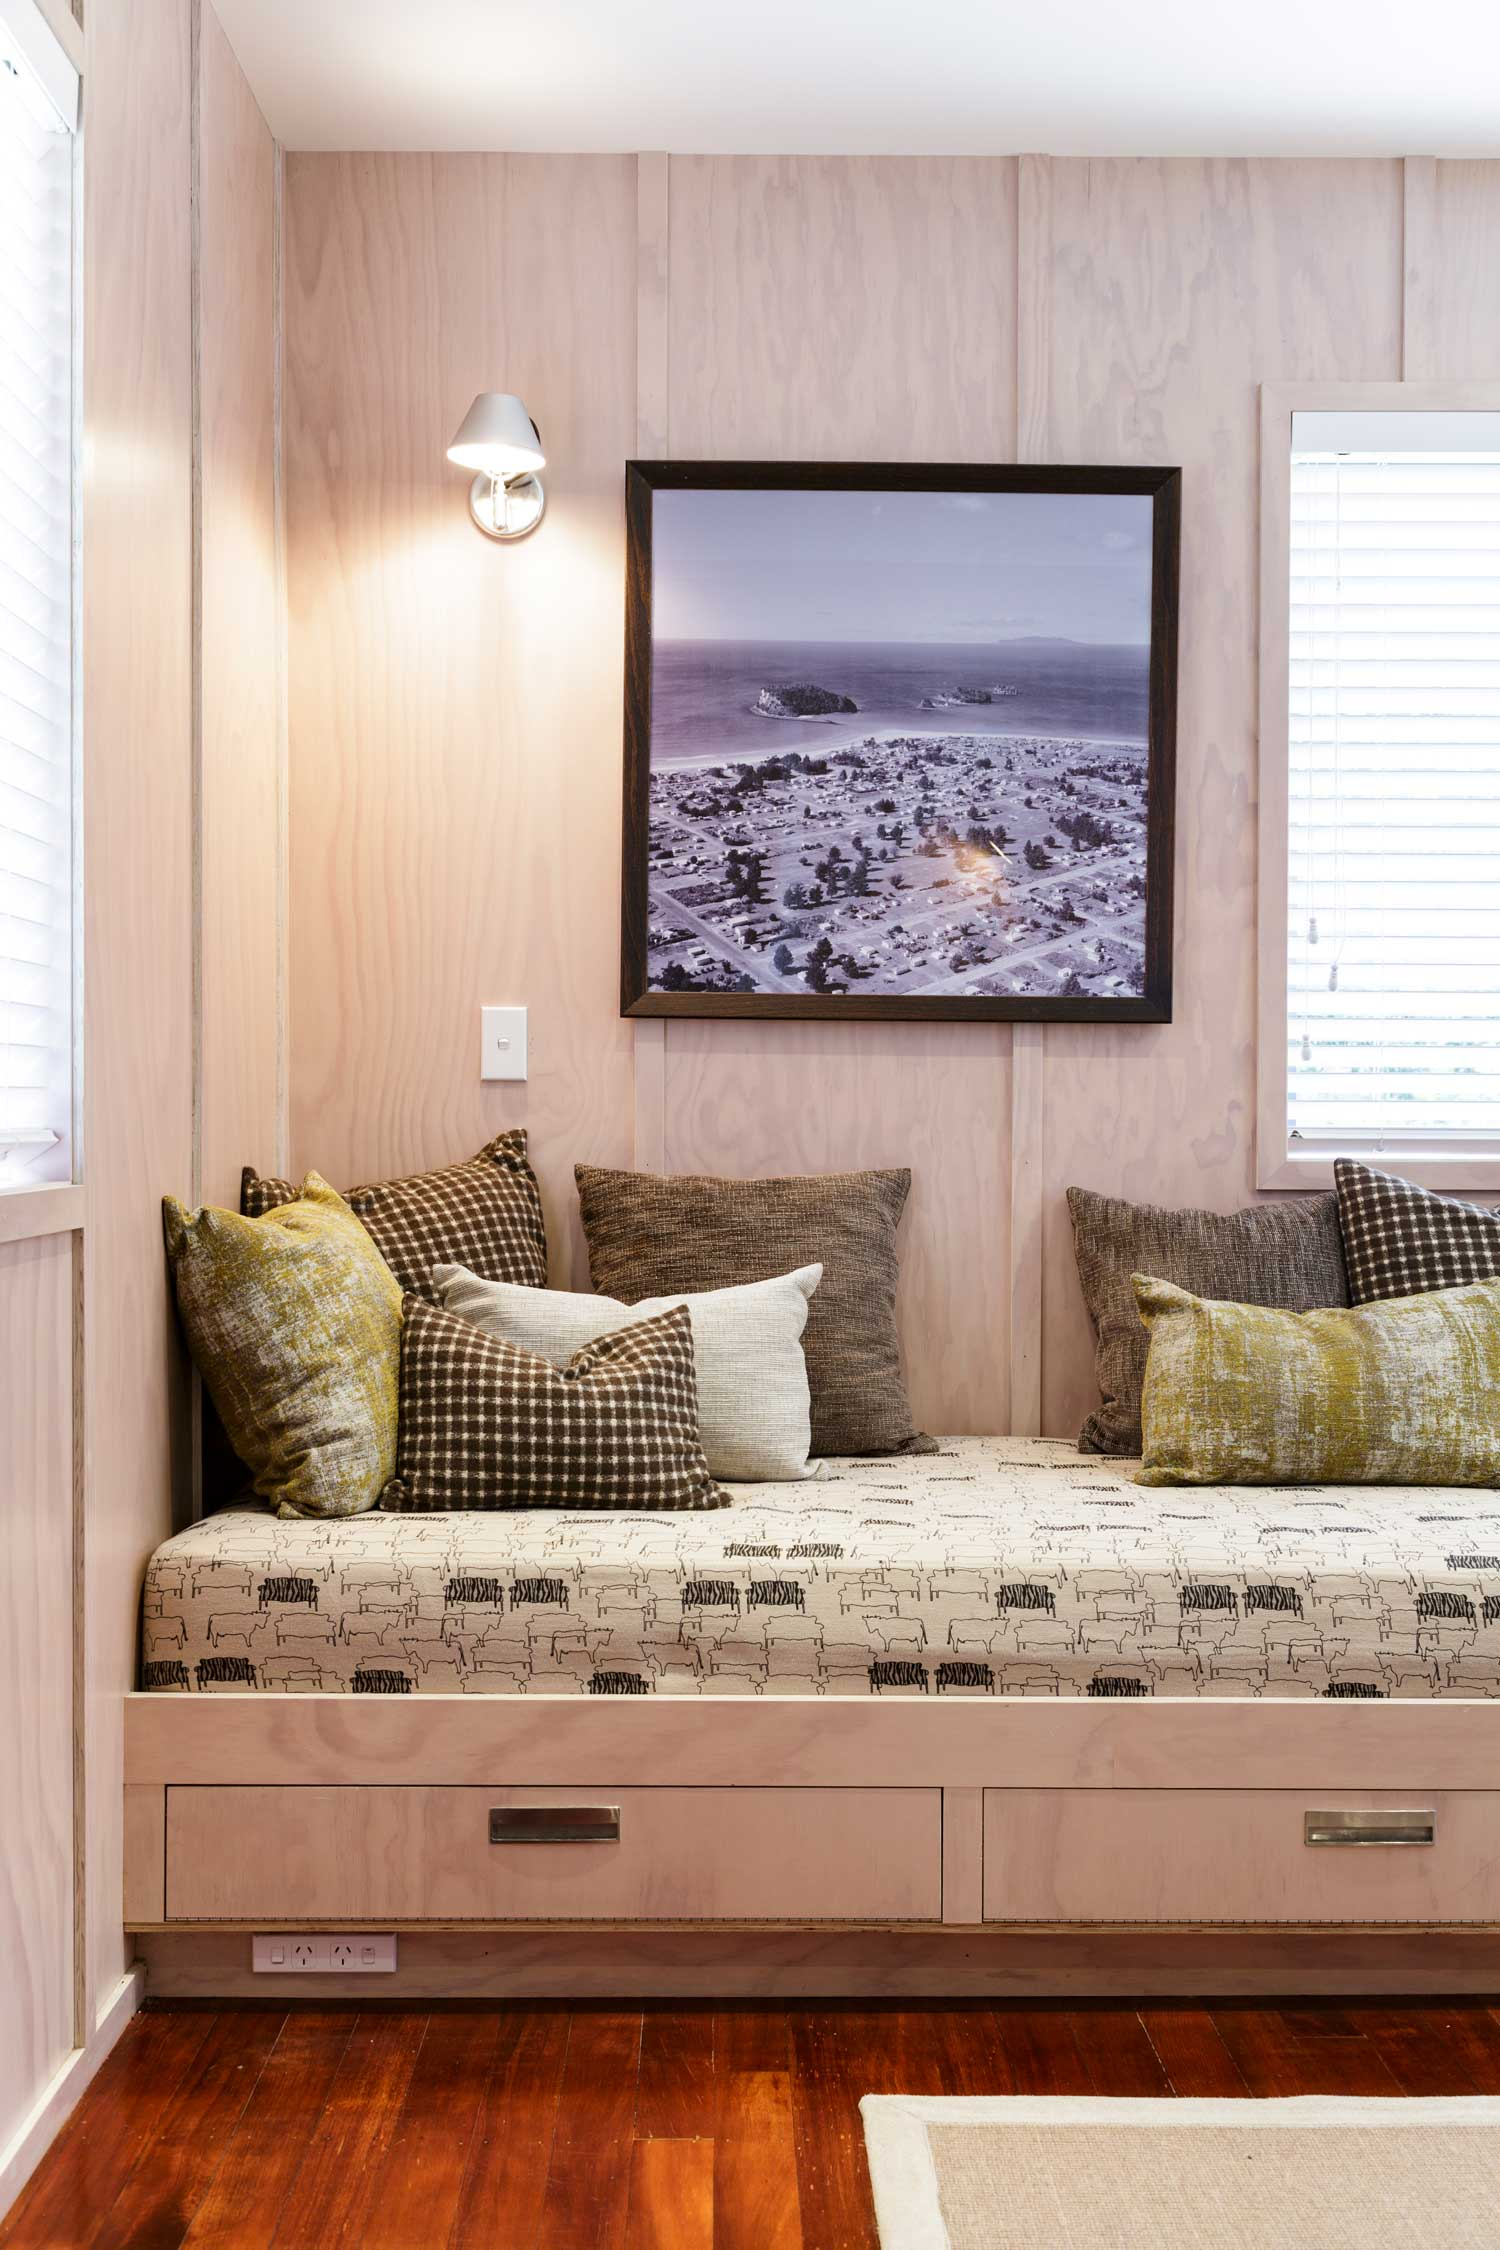 plywood built-in bed